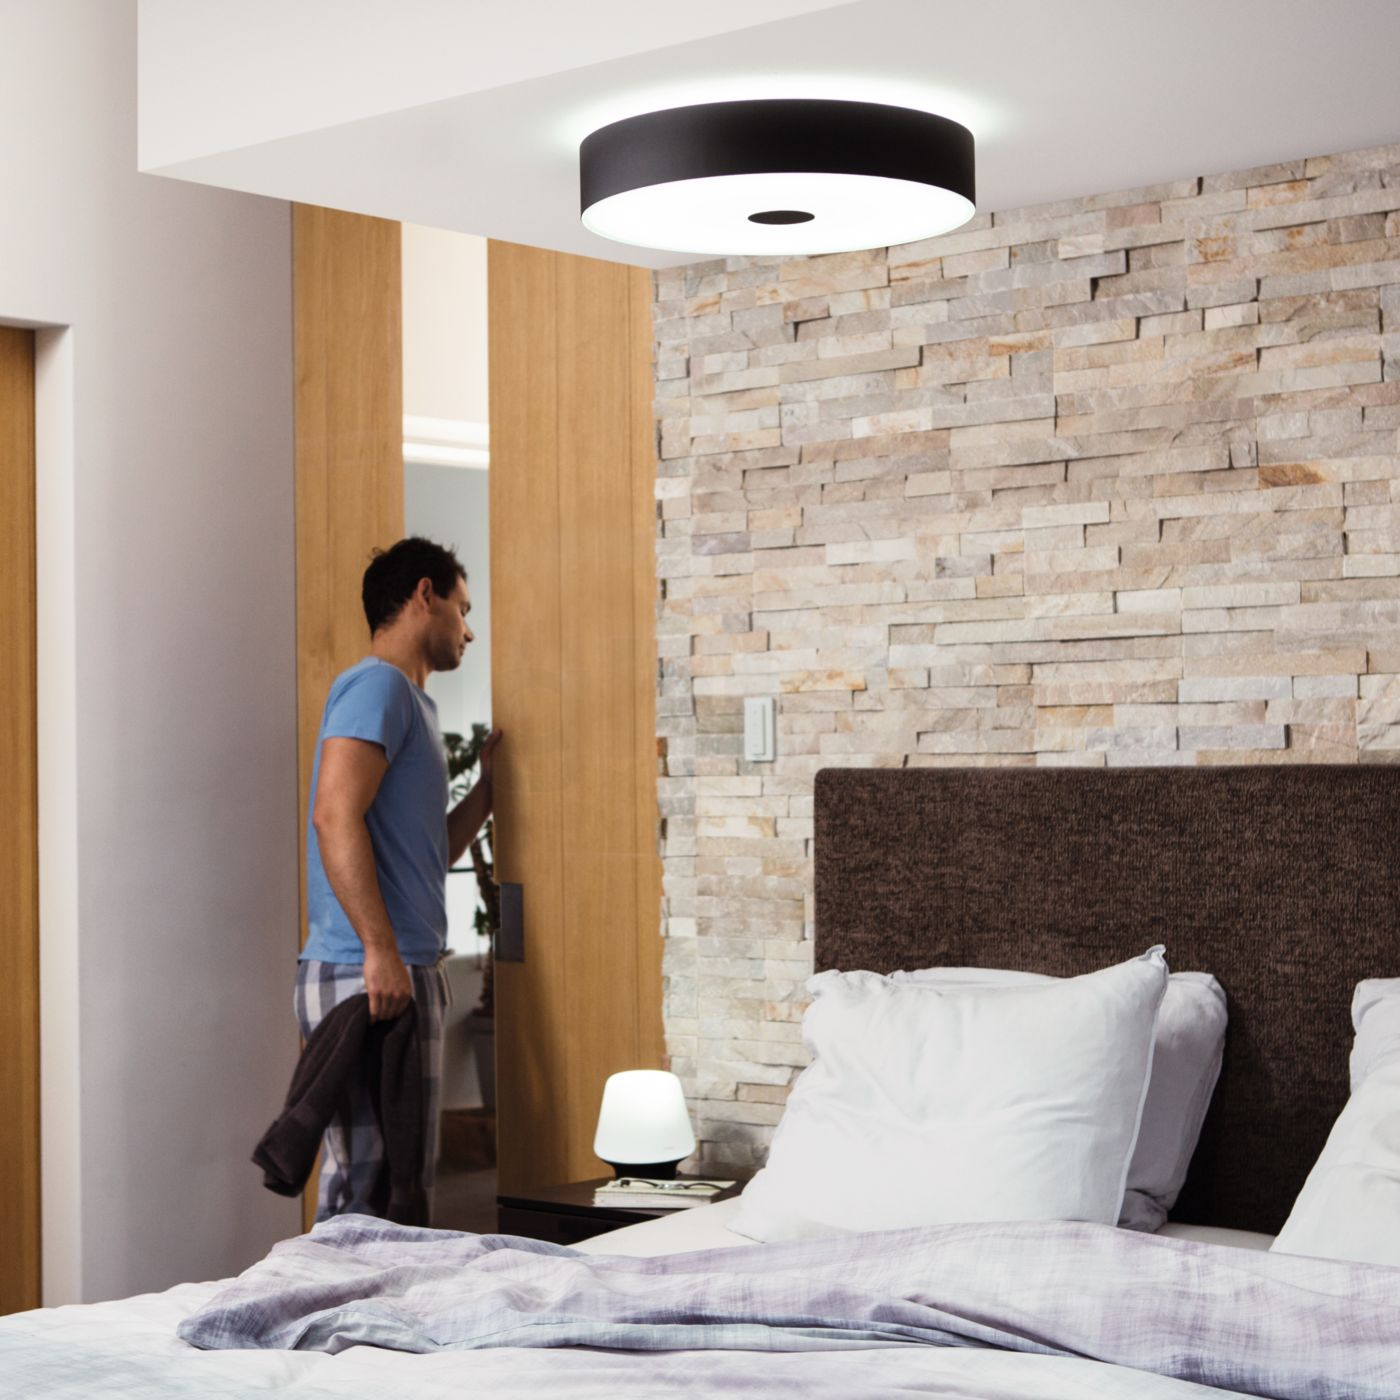 Philips Hue Fair Smart Ceiling Light White Ambiance With Dimmer Switch